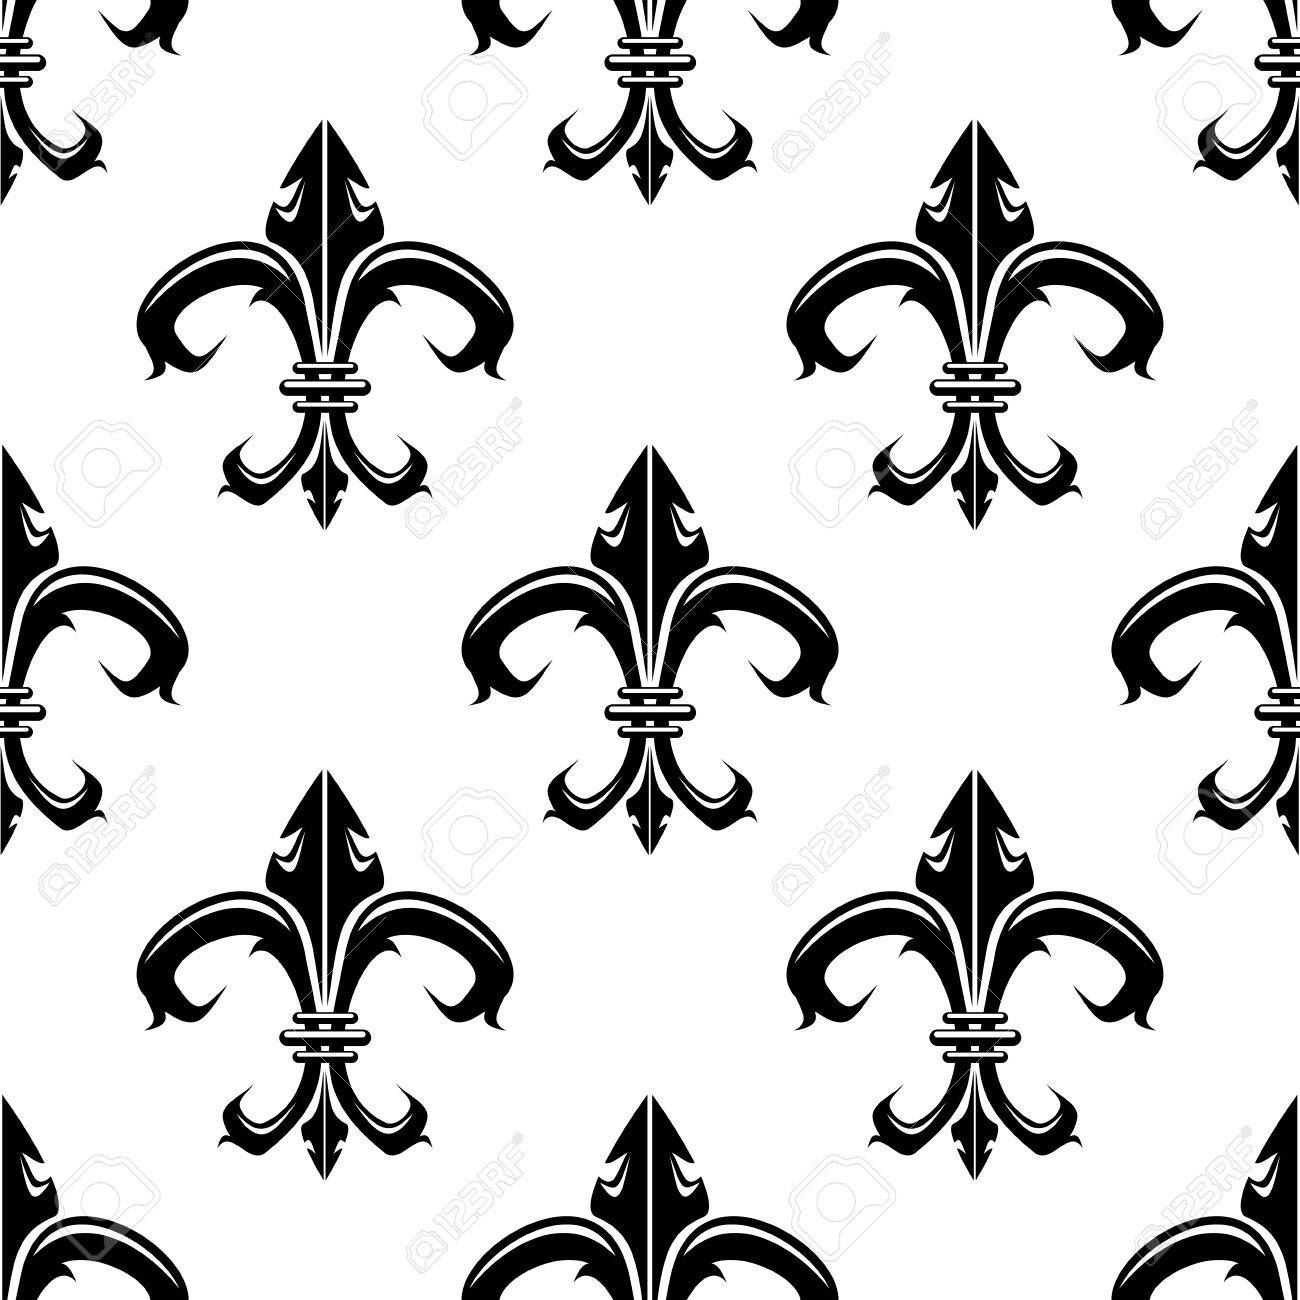 Classical french black and white fleur de lis seamless background pattern with a repeat